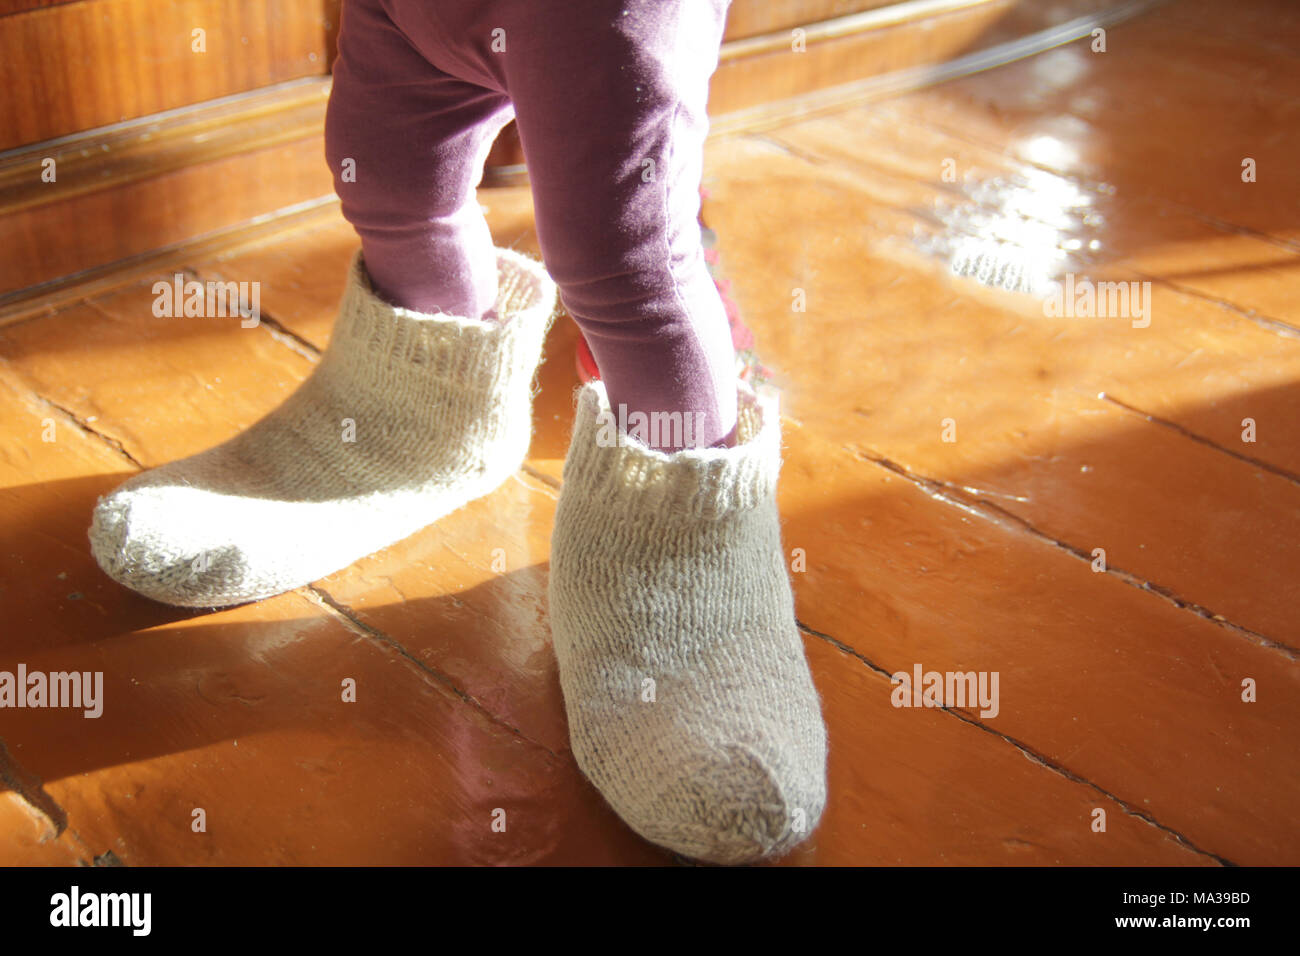 Little girl trying on dad's wool socks at home - Stock Image